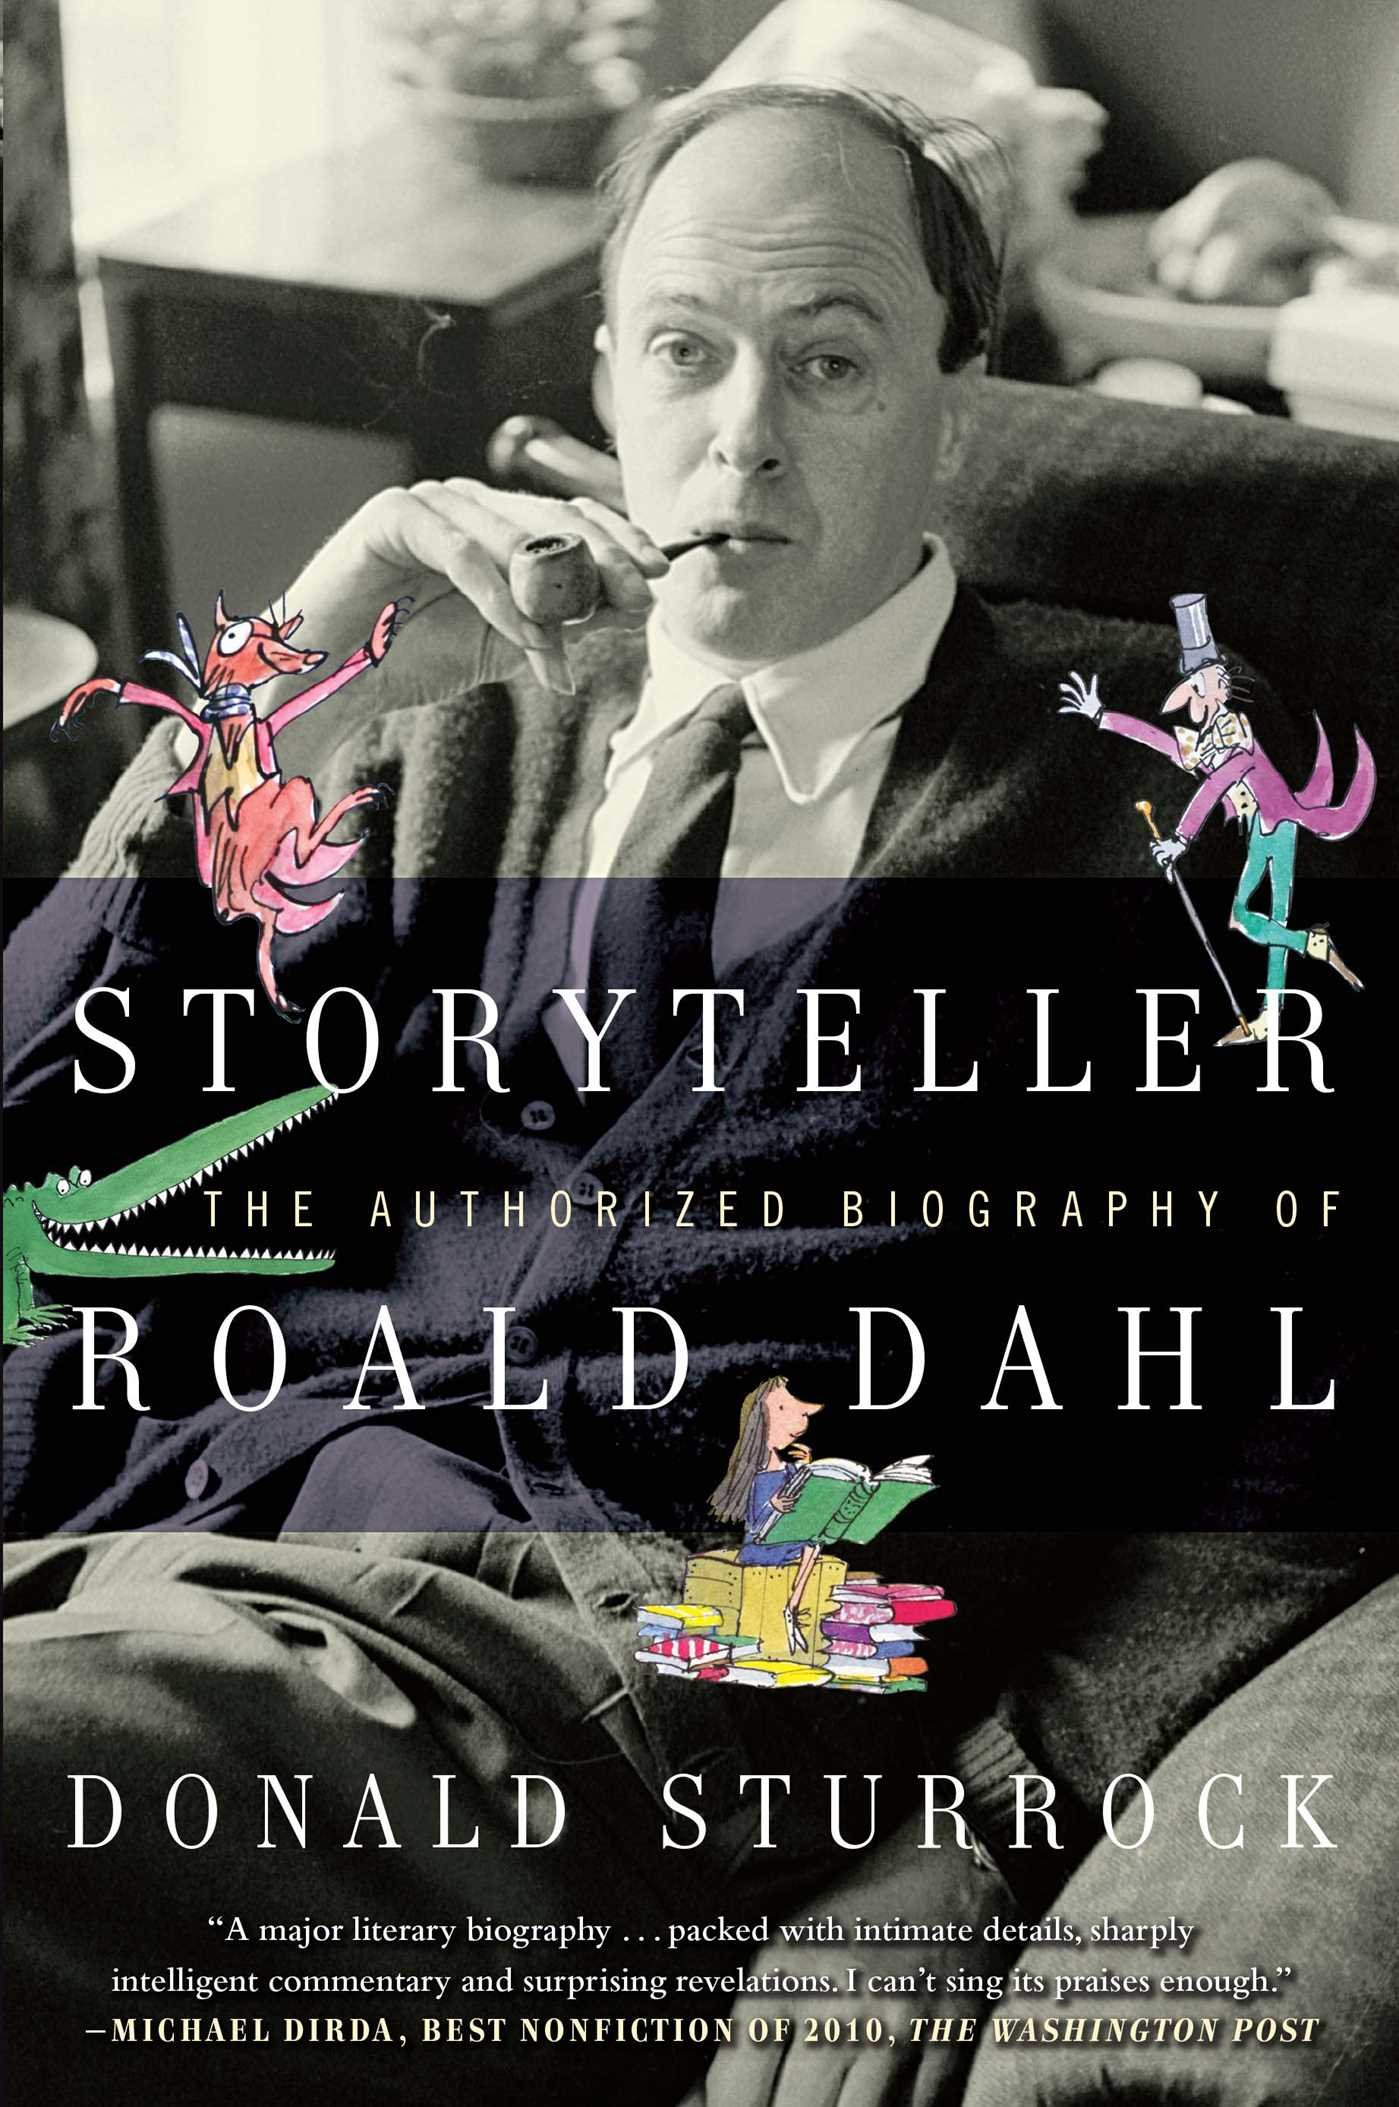 Storyteller the authorized biography of roald dahl donald sturrock storyteller the authorized biography of roald dahl donald sturrock 9781439189764 amazon books fandeluxe Image collections